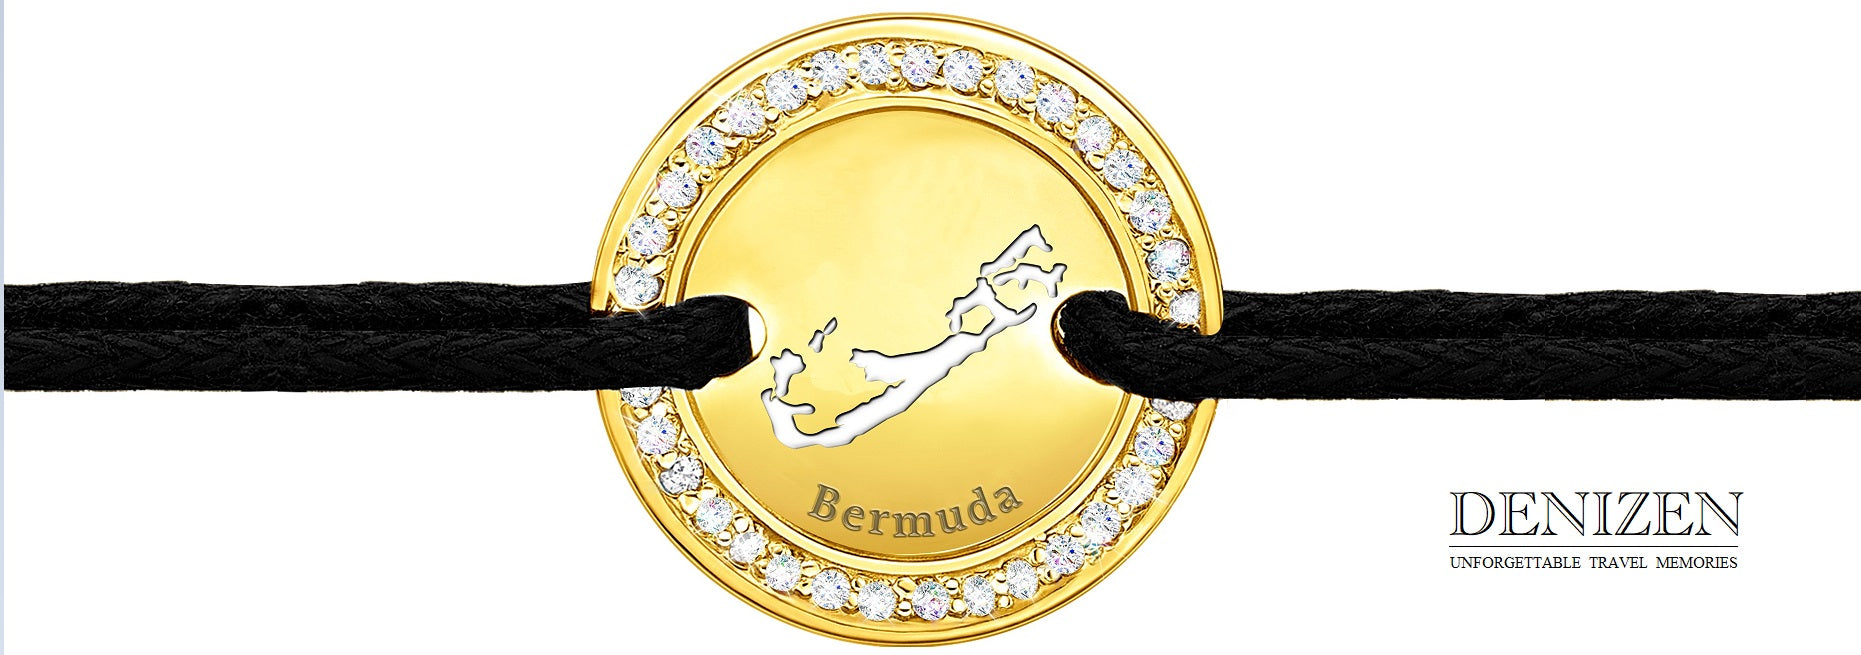 Denizen bracelet of Bermuda